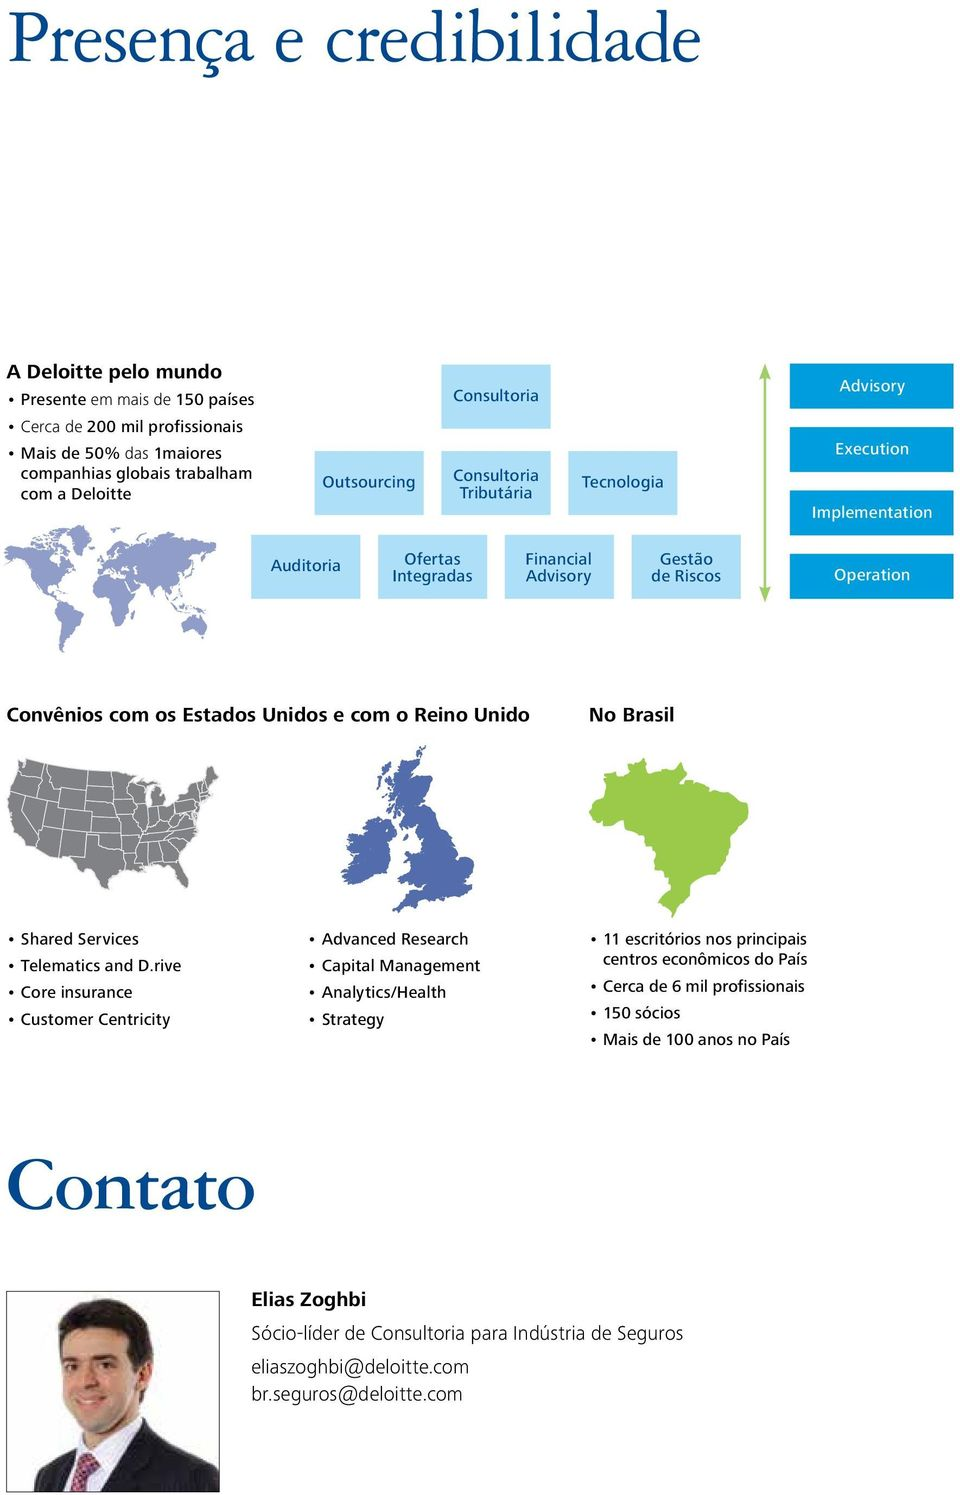 Reino Unido No Brasil Shared Services Telematics and D.